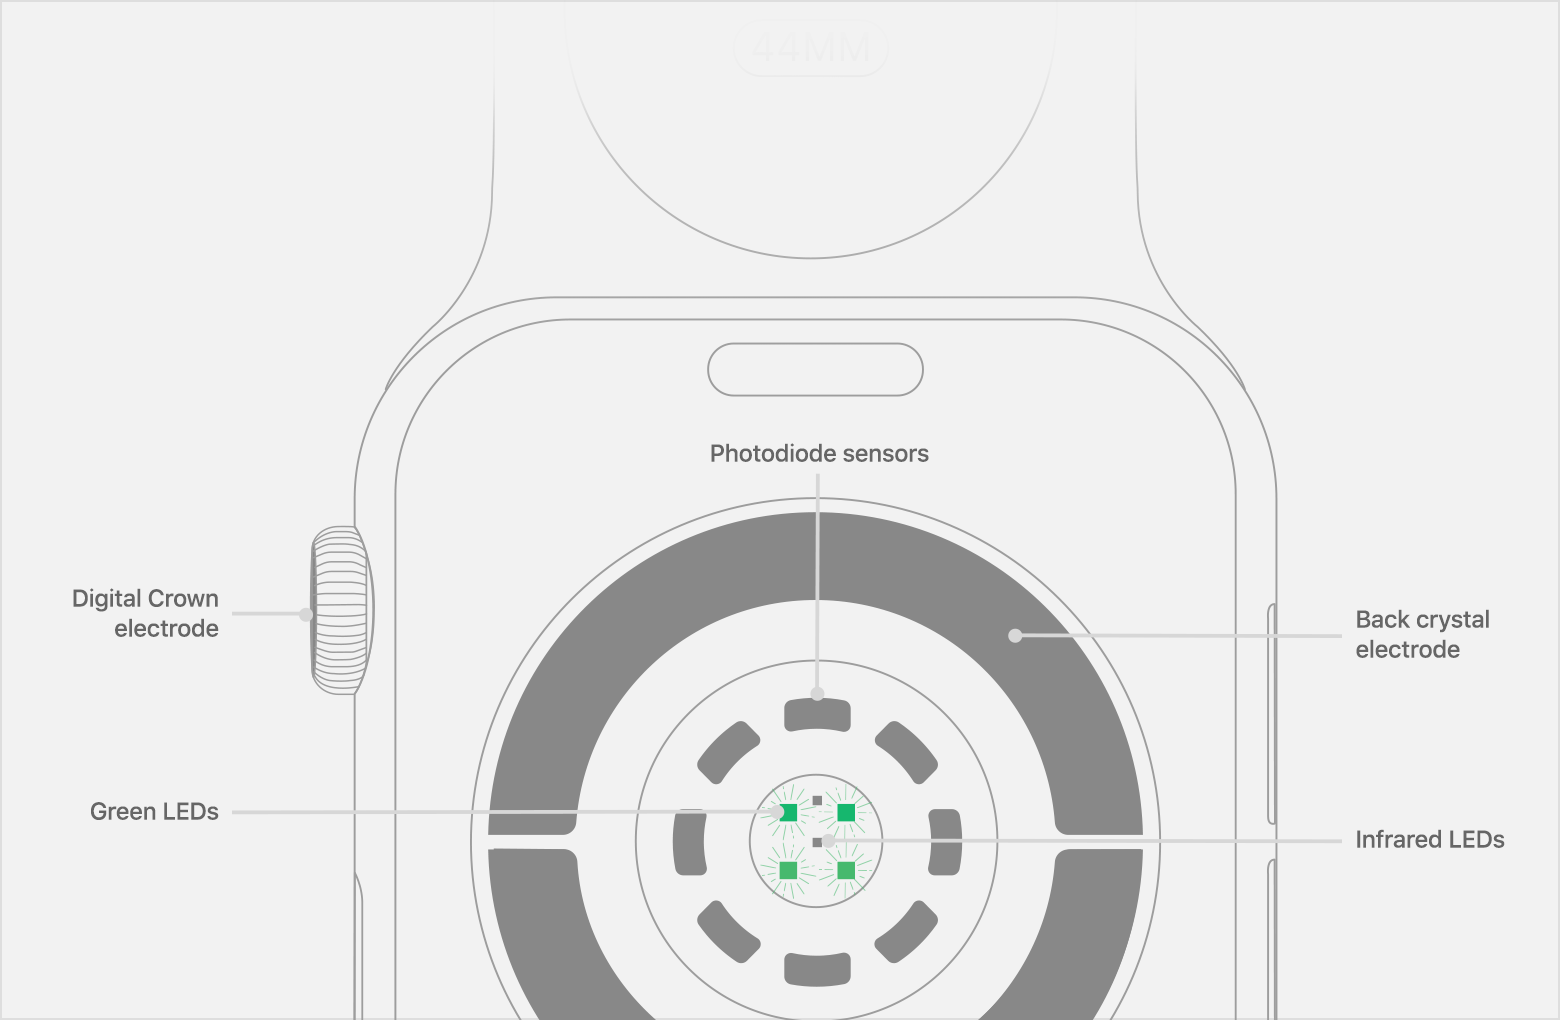 Location of Photodiode sensors, Infrared LEDs, and Green LEDs on Apple Watch Series 4.